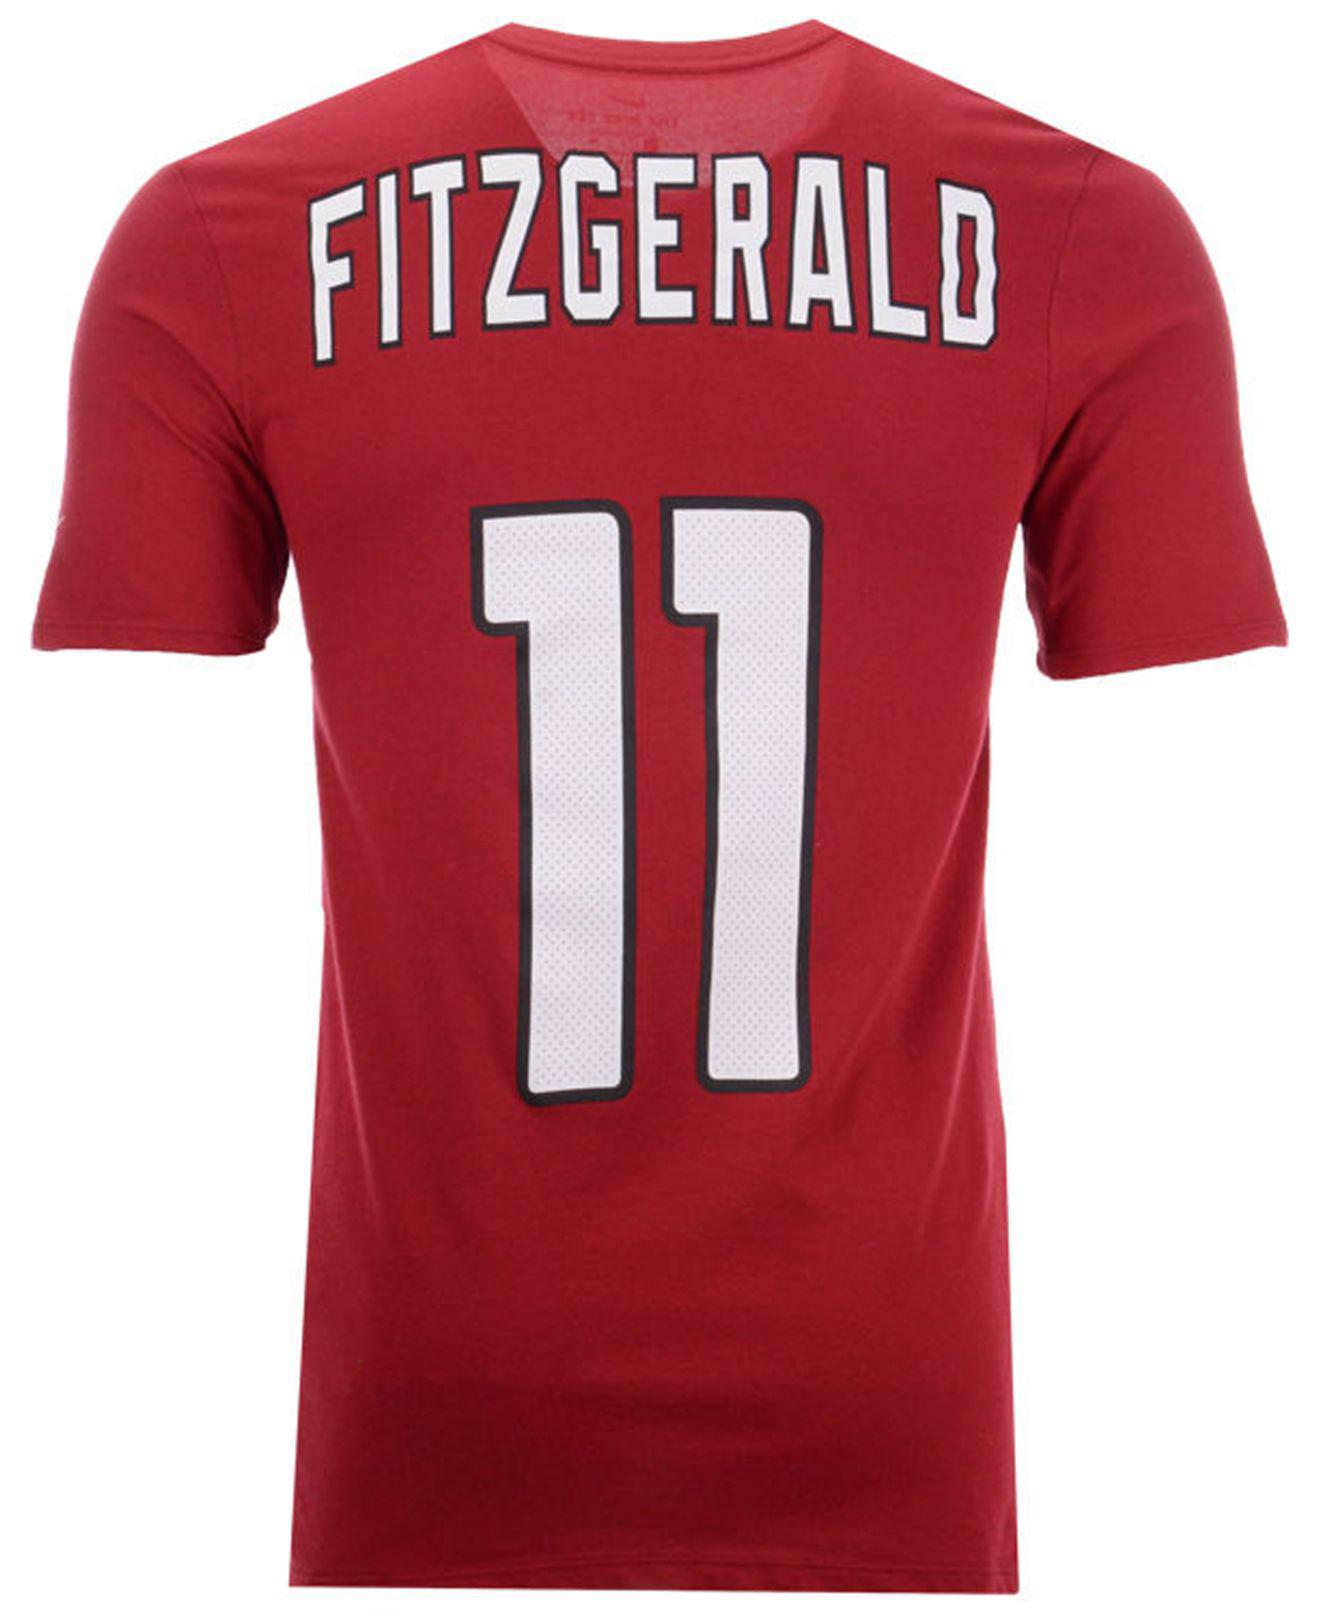 4ef2c5db1 Lyst - Nike Larry Fitzgerald Arizona Cardinals Pride Name And Number  Wordmark T-shirt in Red for Men